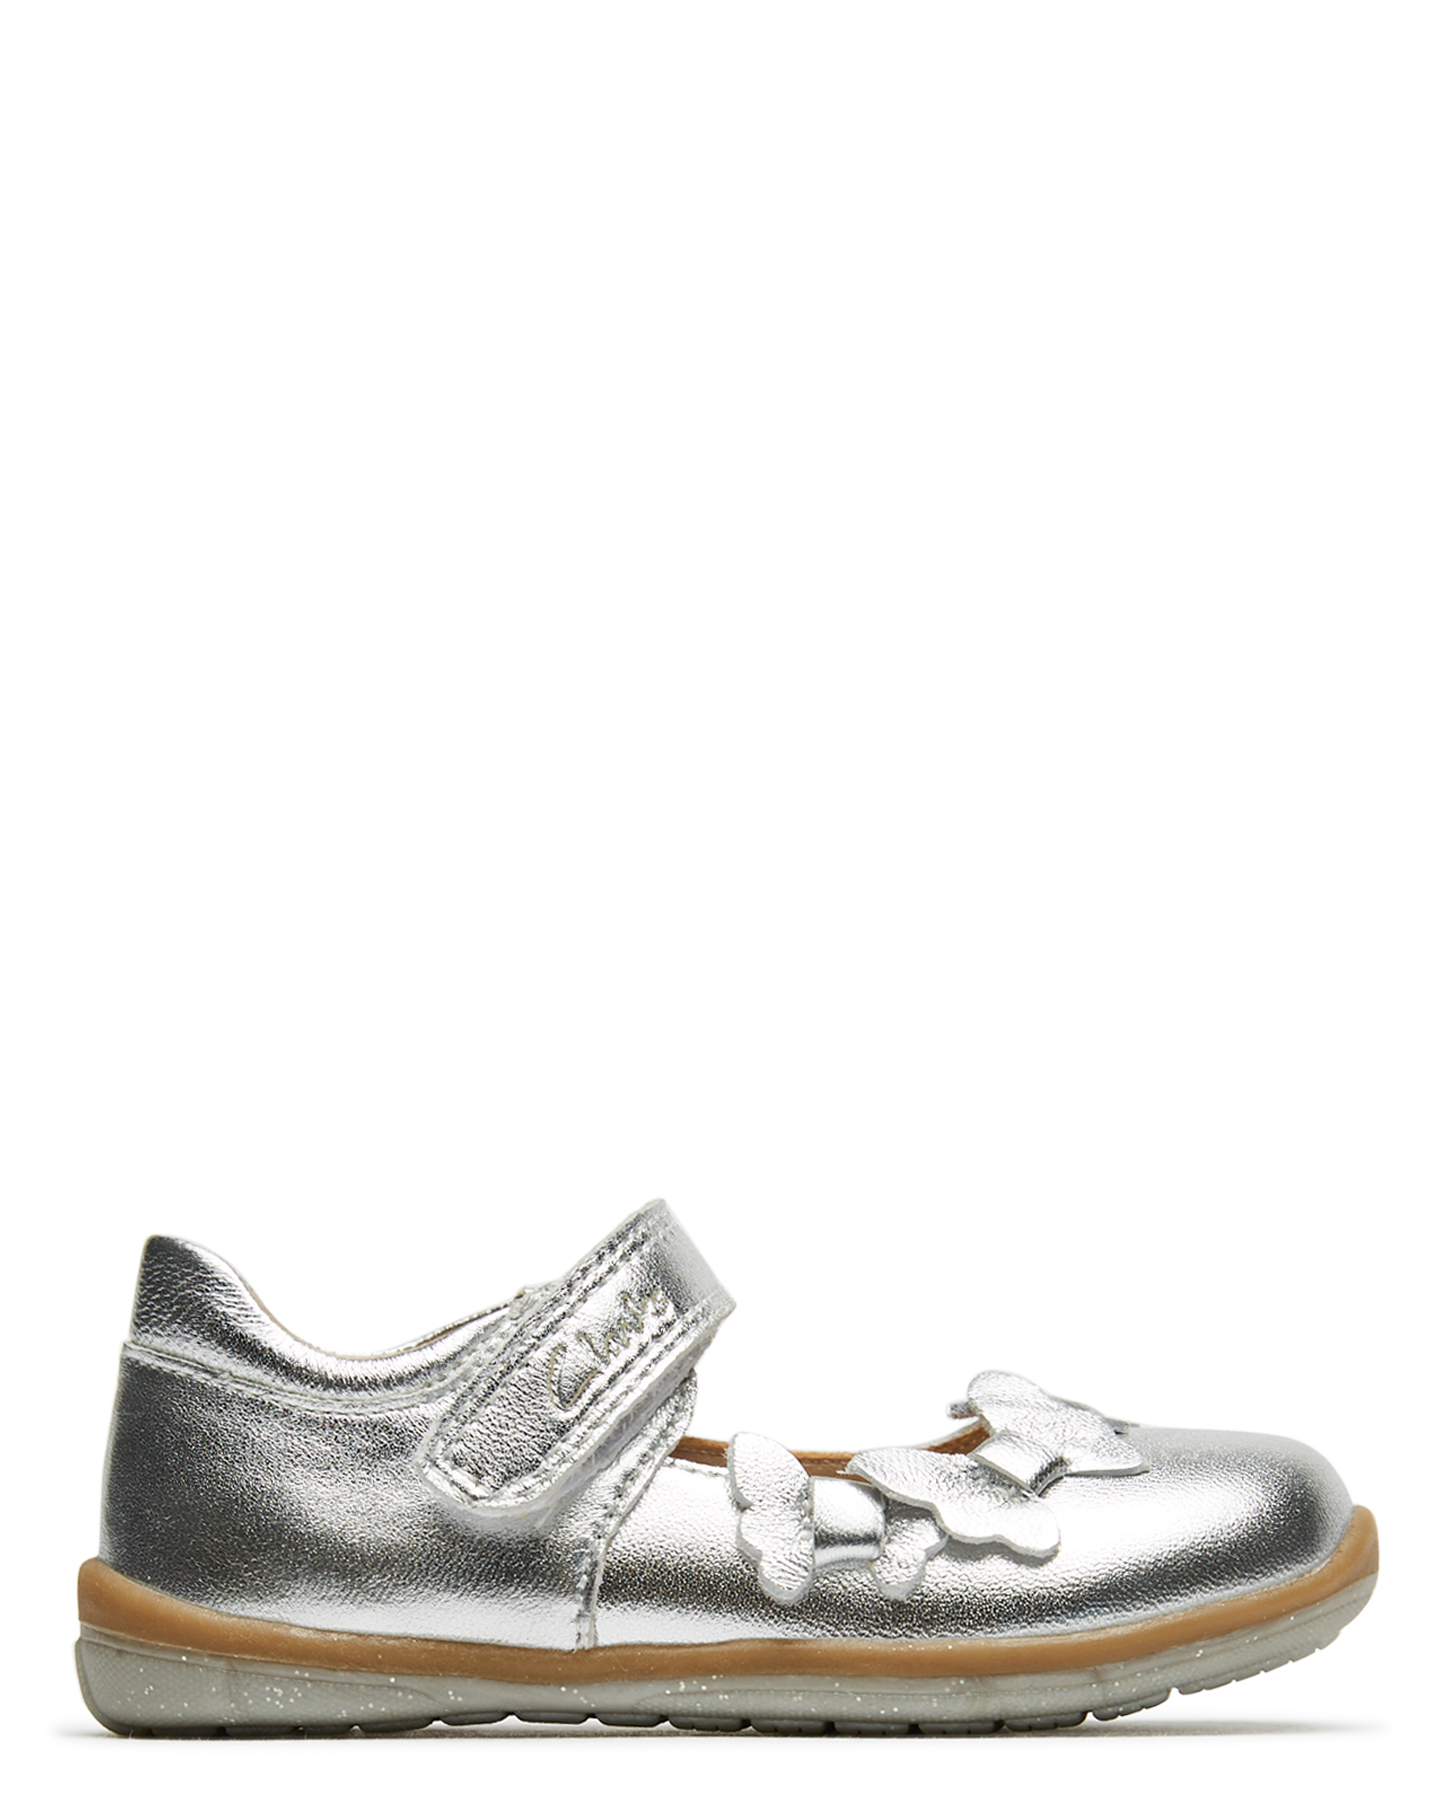 Clarks Girls Martha Shoe - Toddler -Uk- Silver E